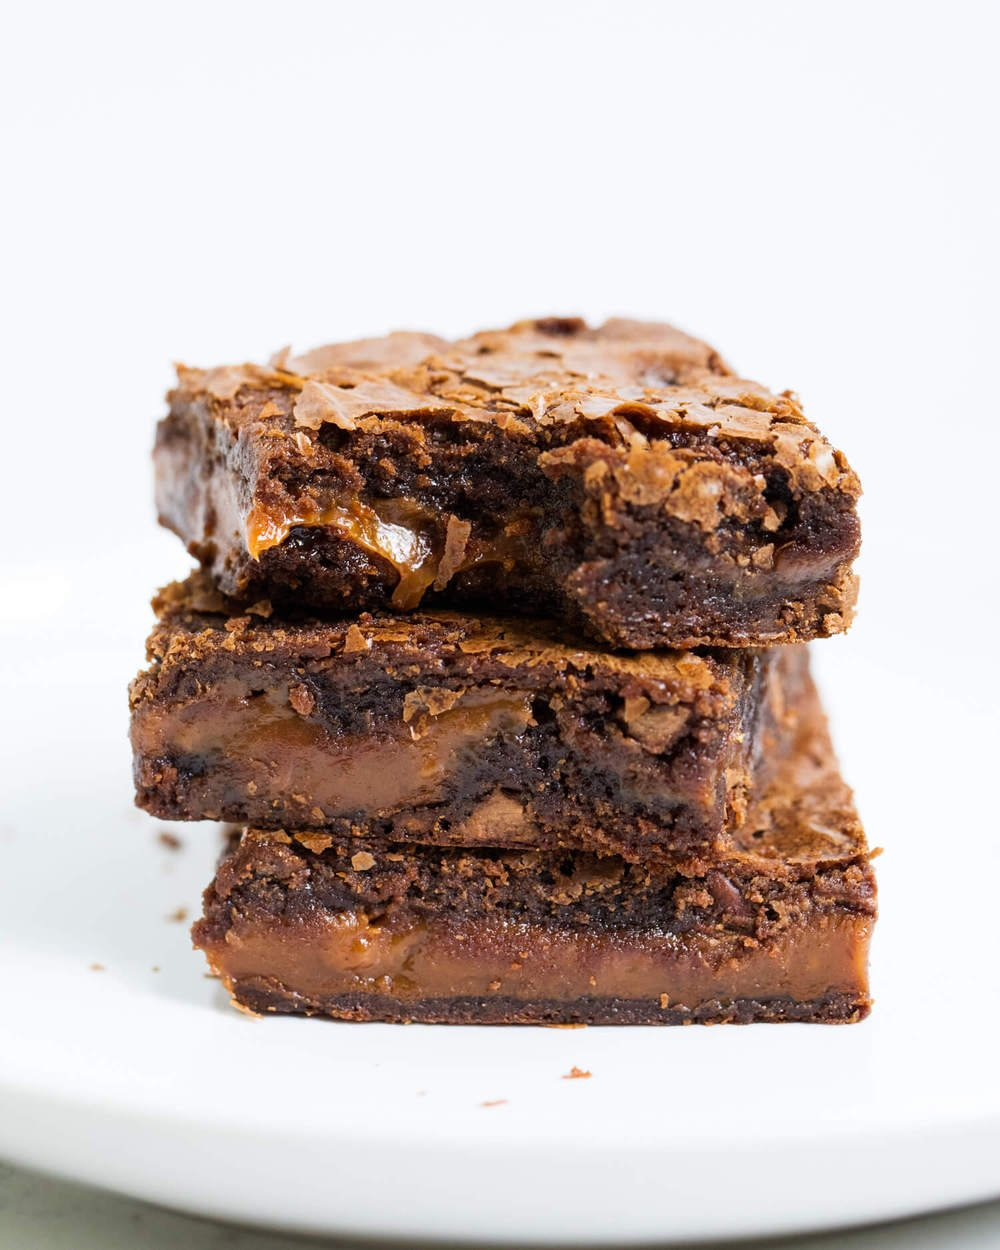 Chocolate Fudge Caramel Brownies I Heart Naptime